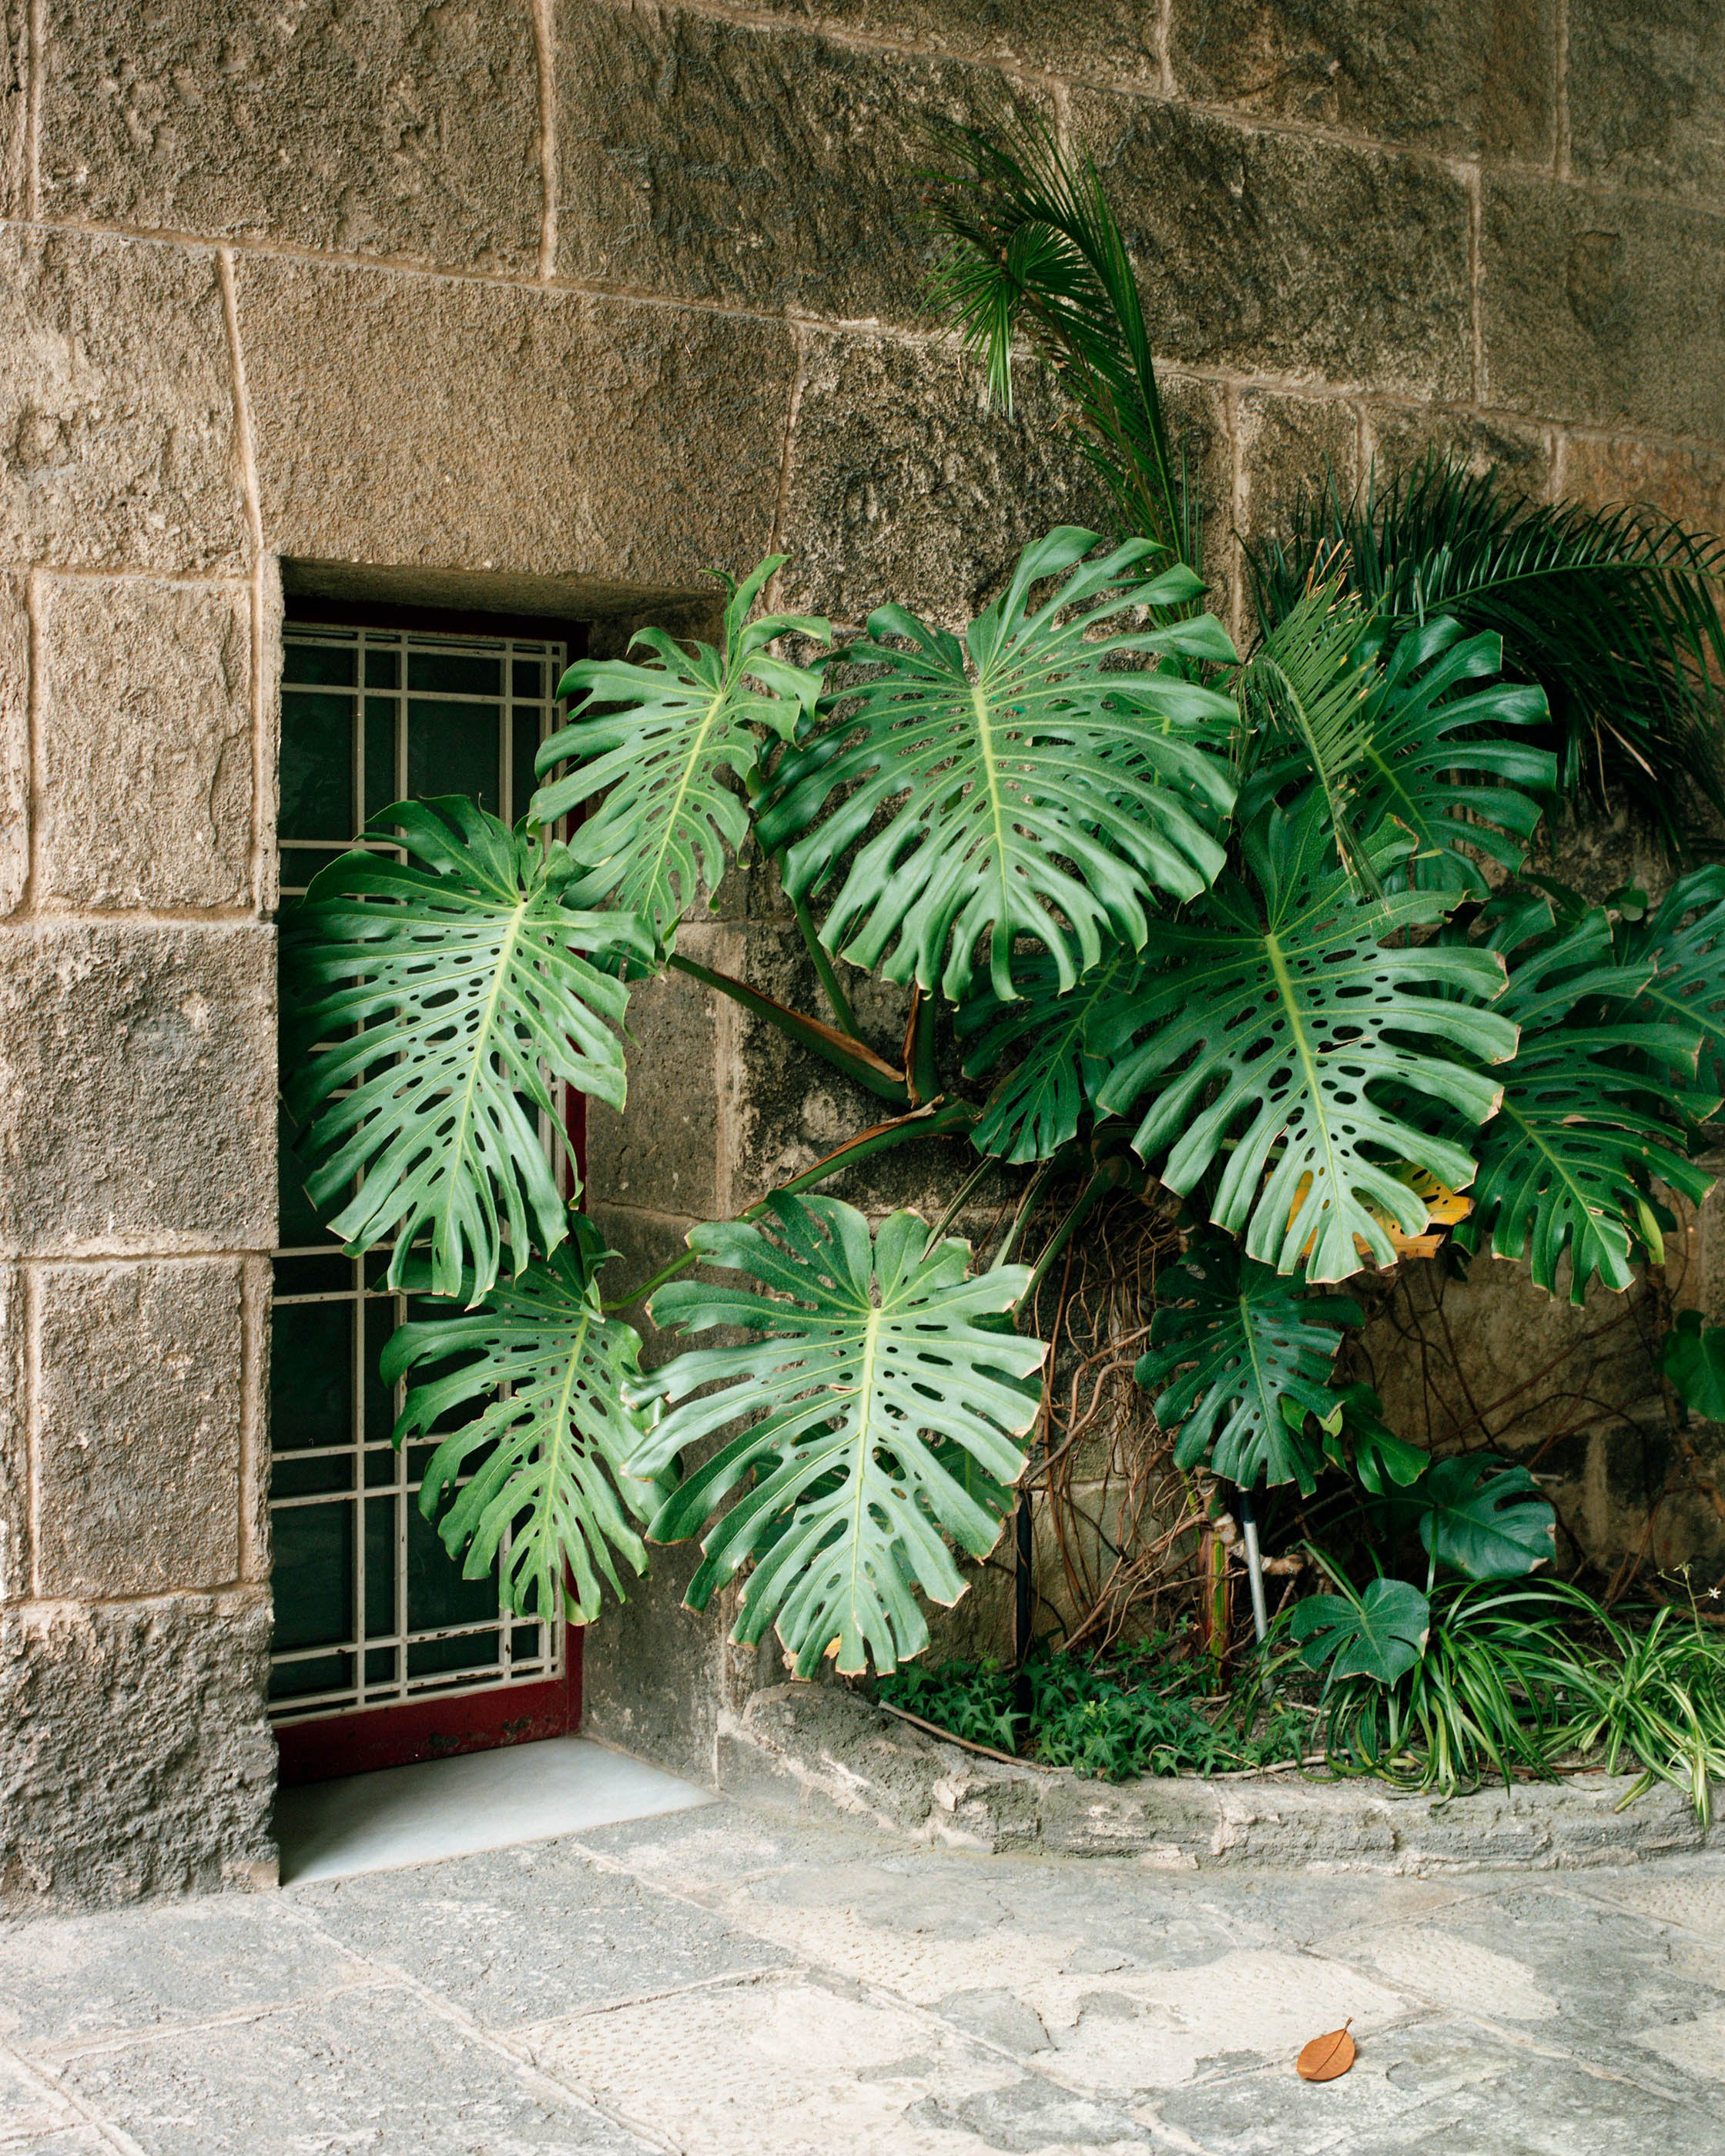 #barcelona #monocle #sarria #lobby #editorial #vegetal #vegetal #monstera